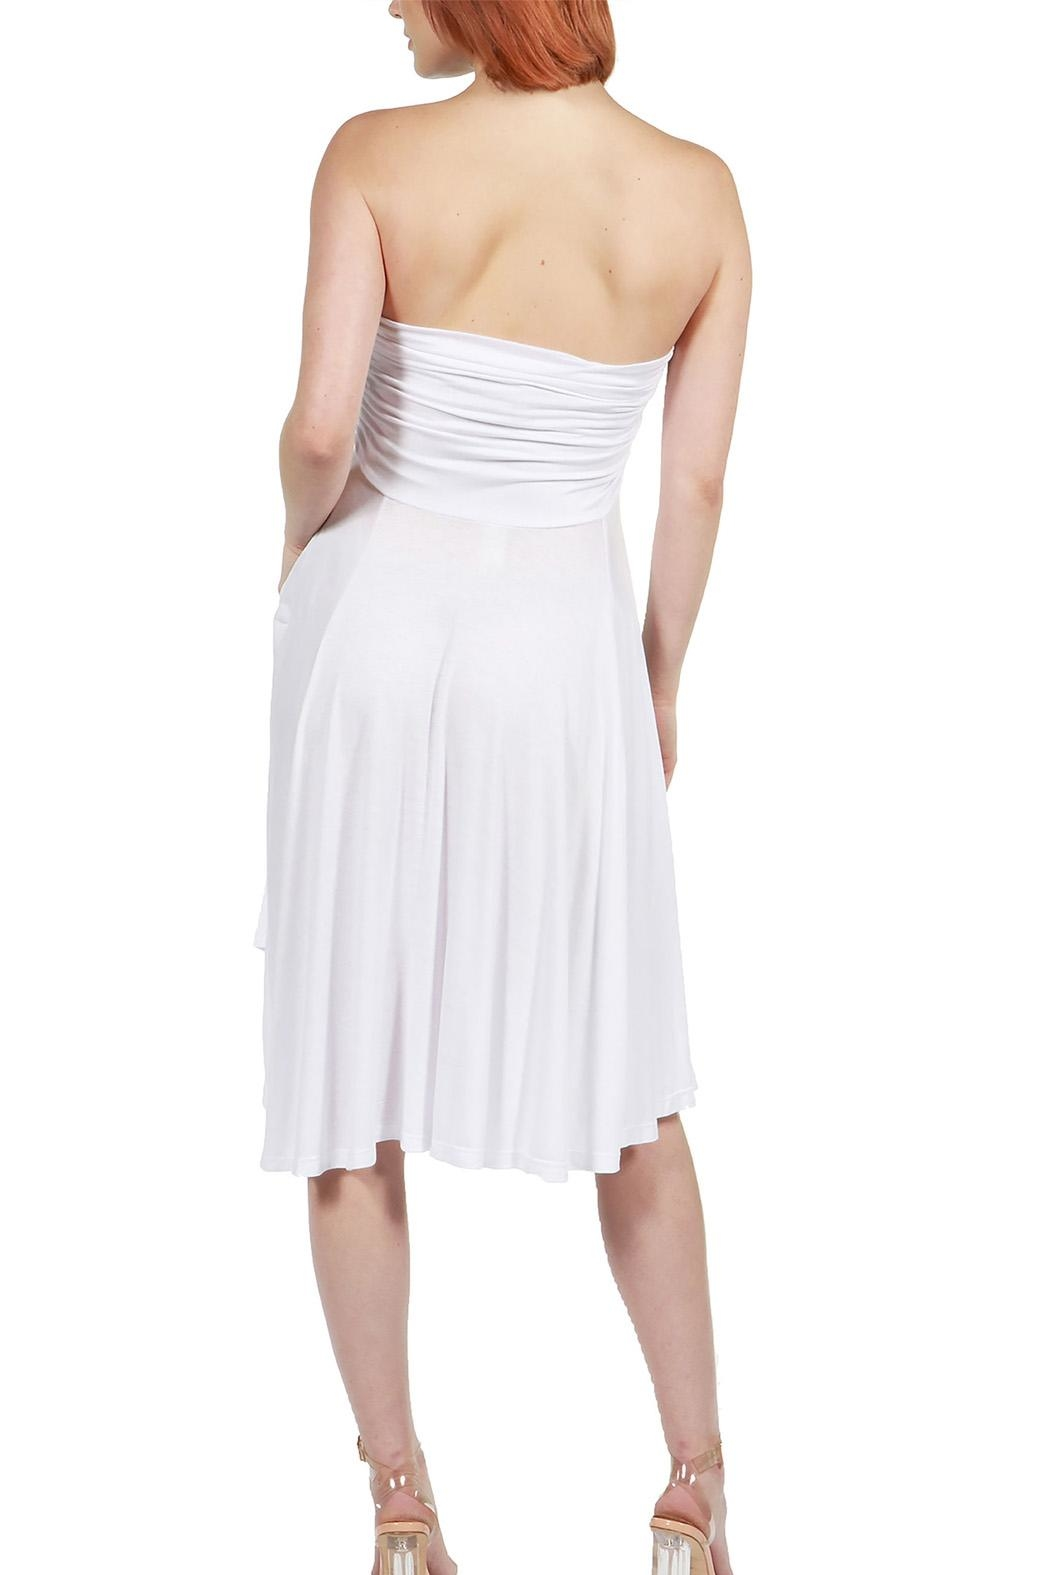 24/7 Comfort Apparel Irresistible Strapless Dress - Side Cropped Image